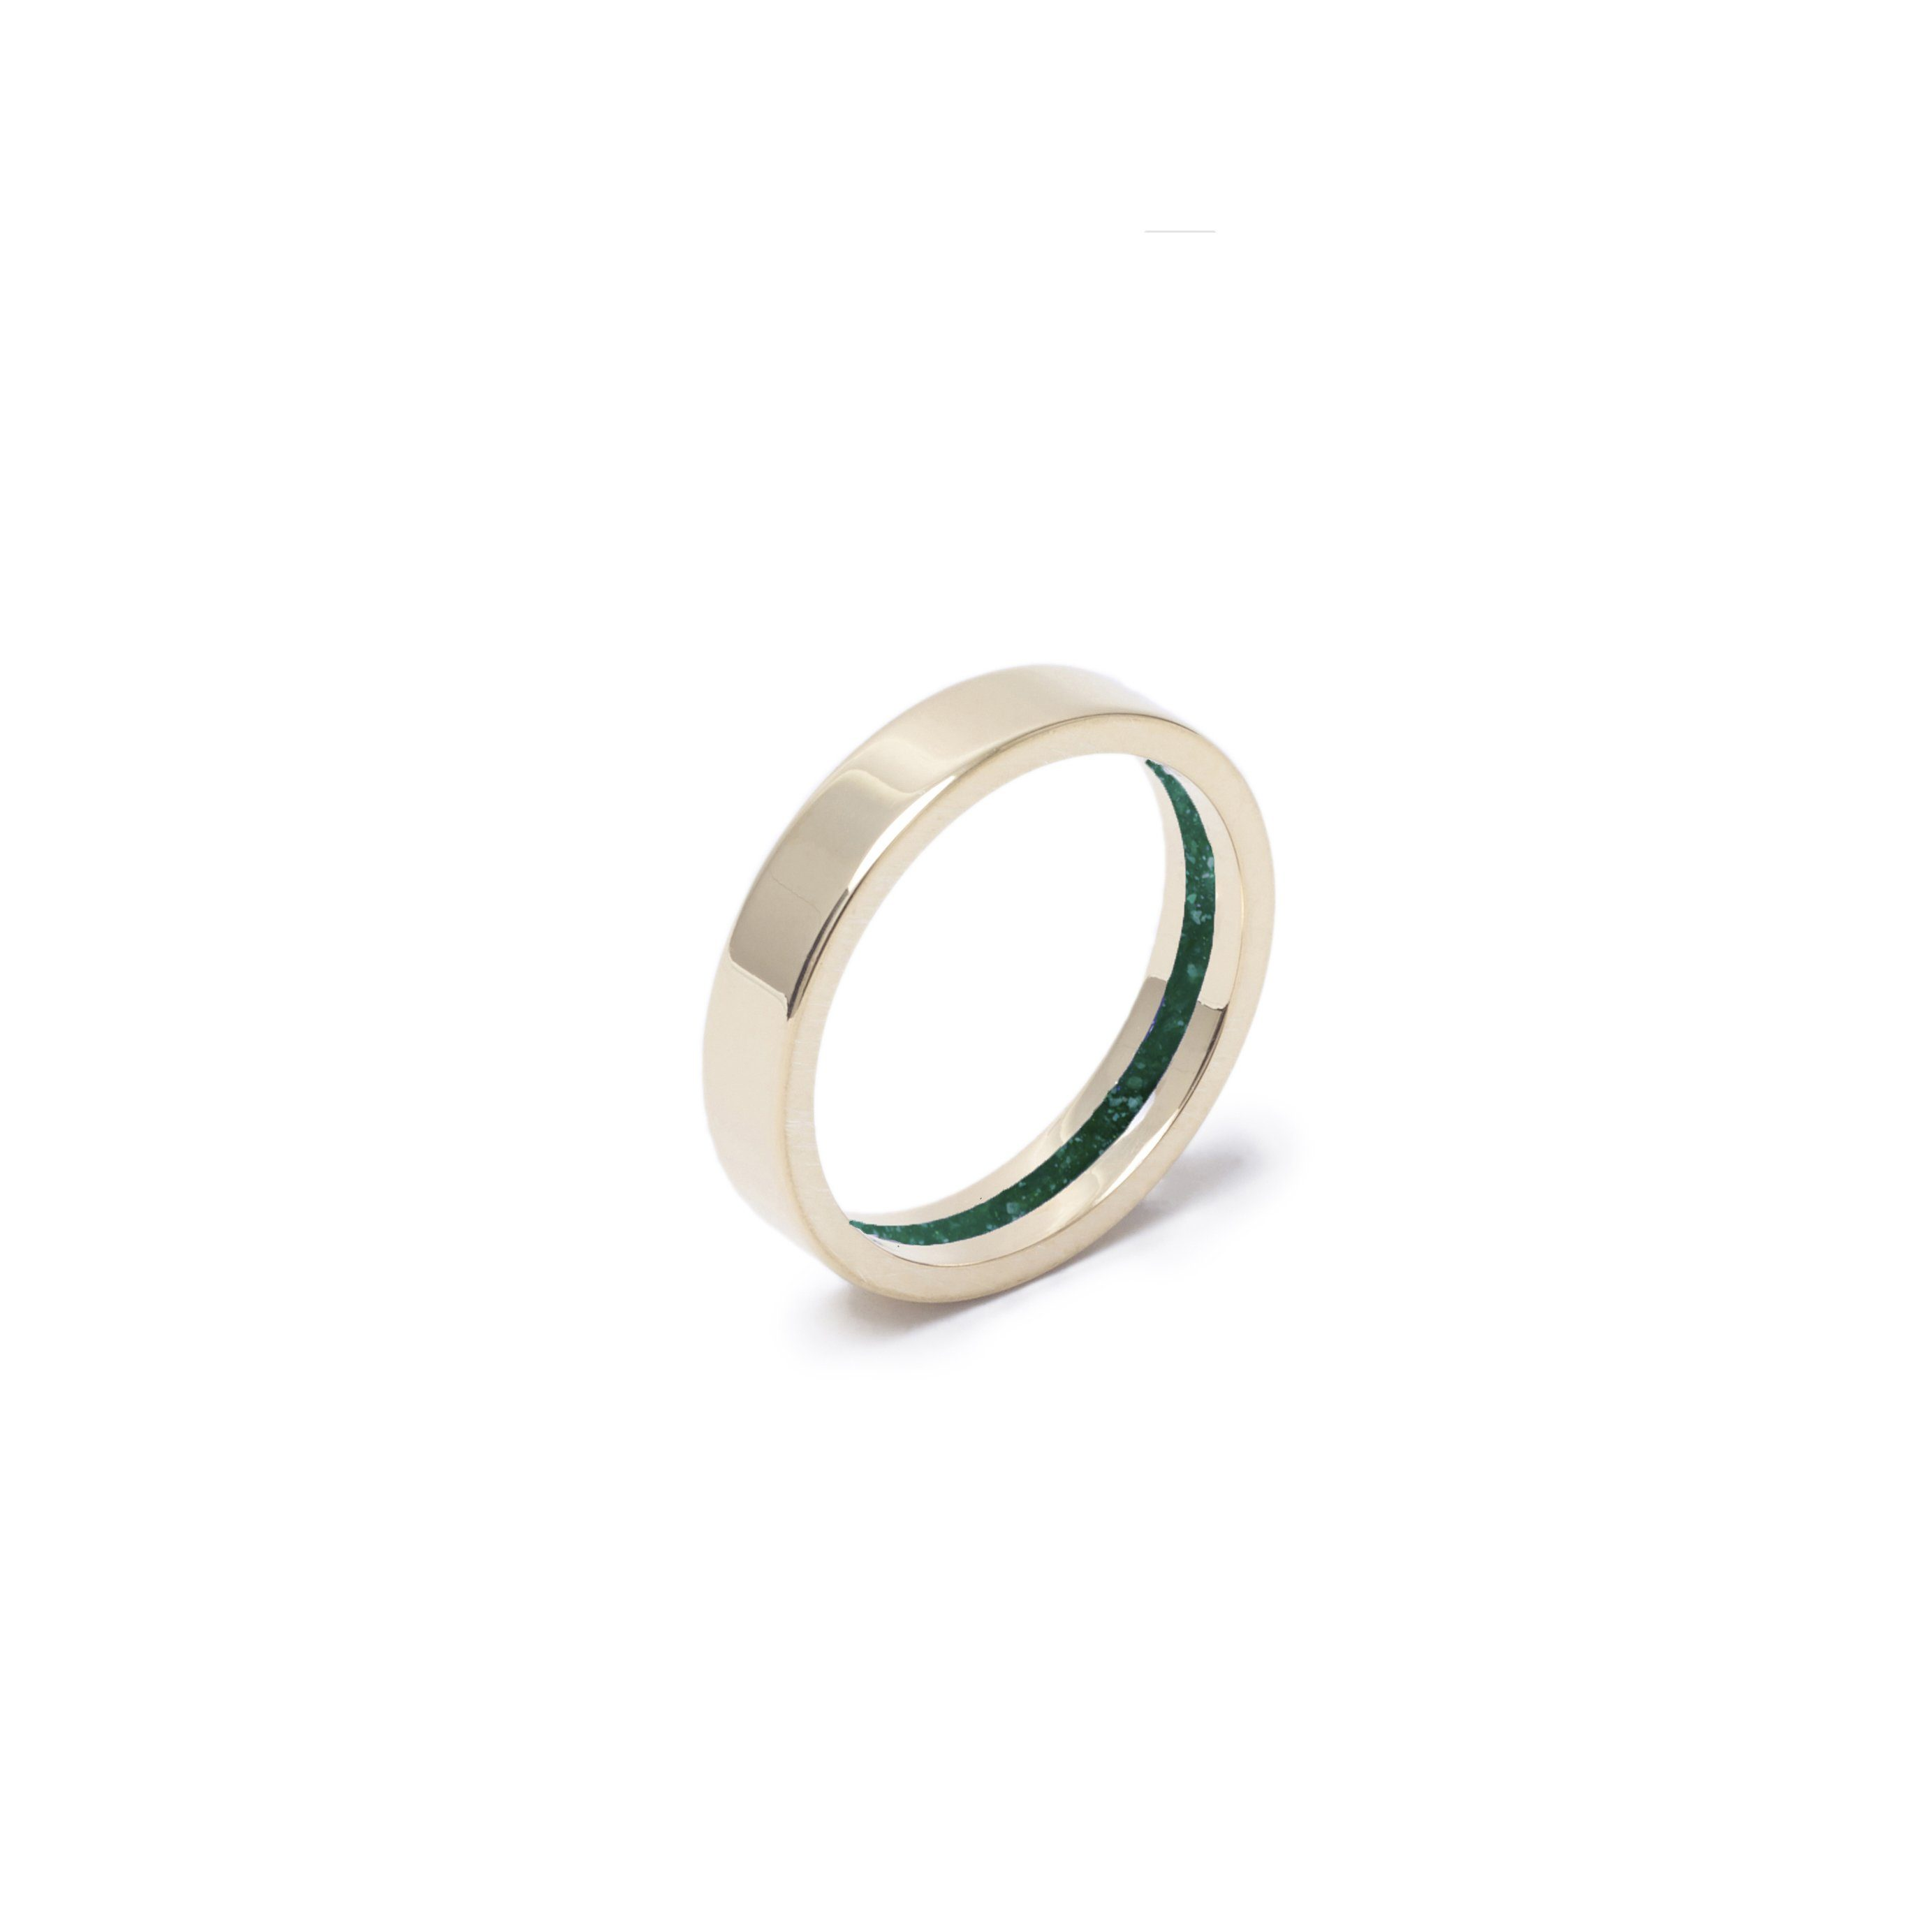 Everence Ring, 10k Yellow Gold everence.life 4mm Emerald